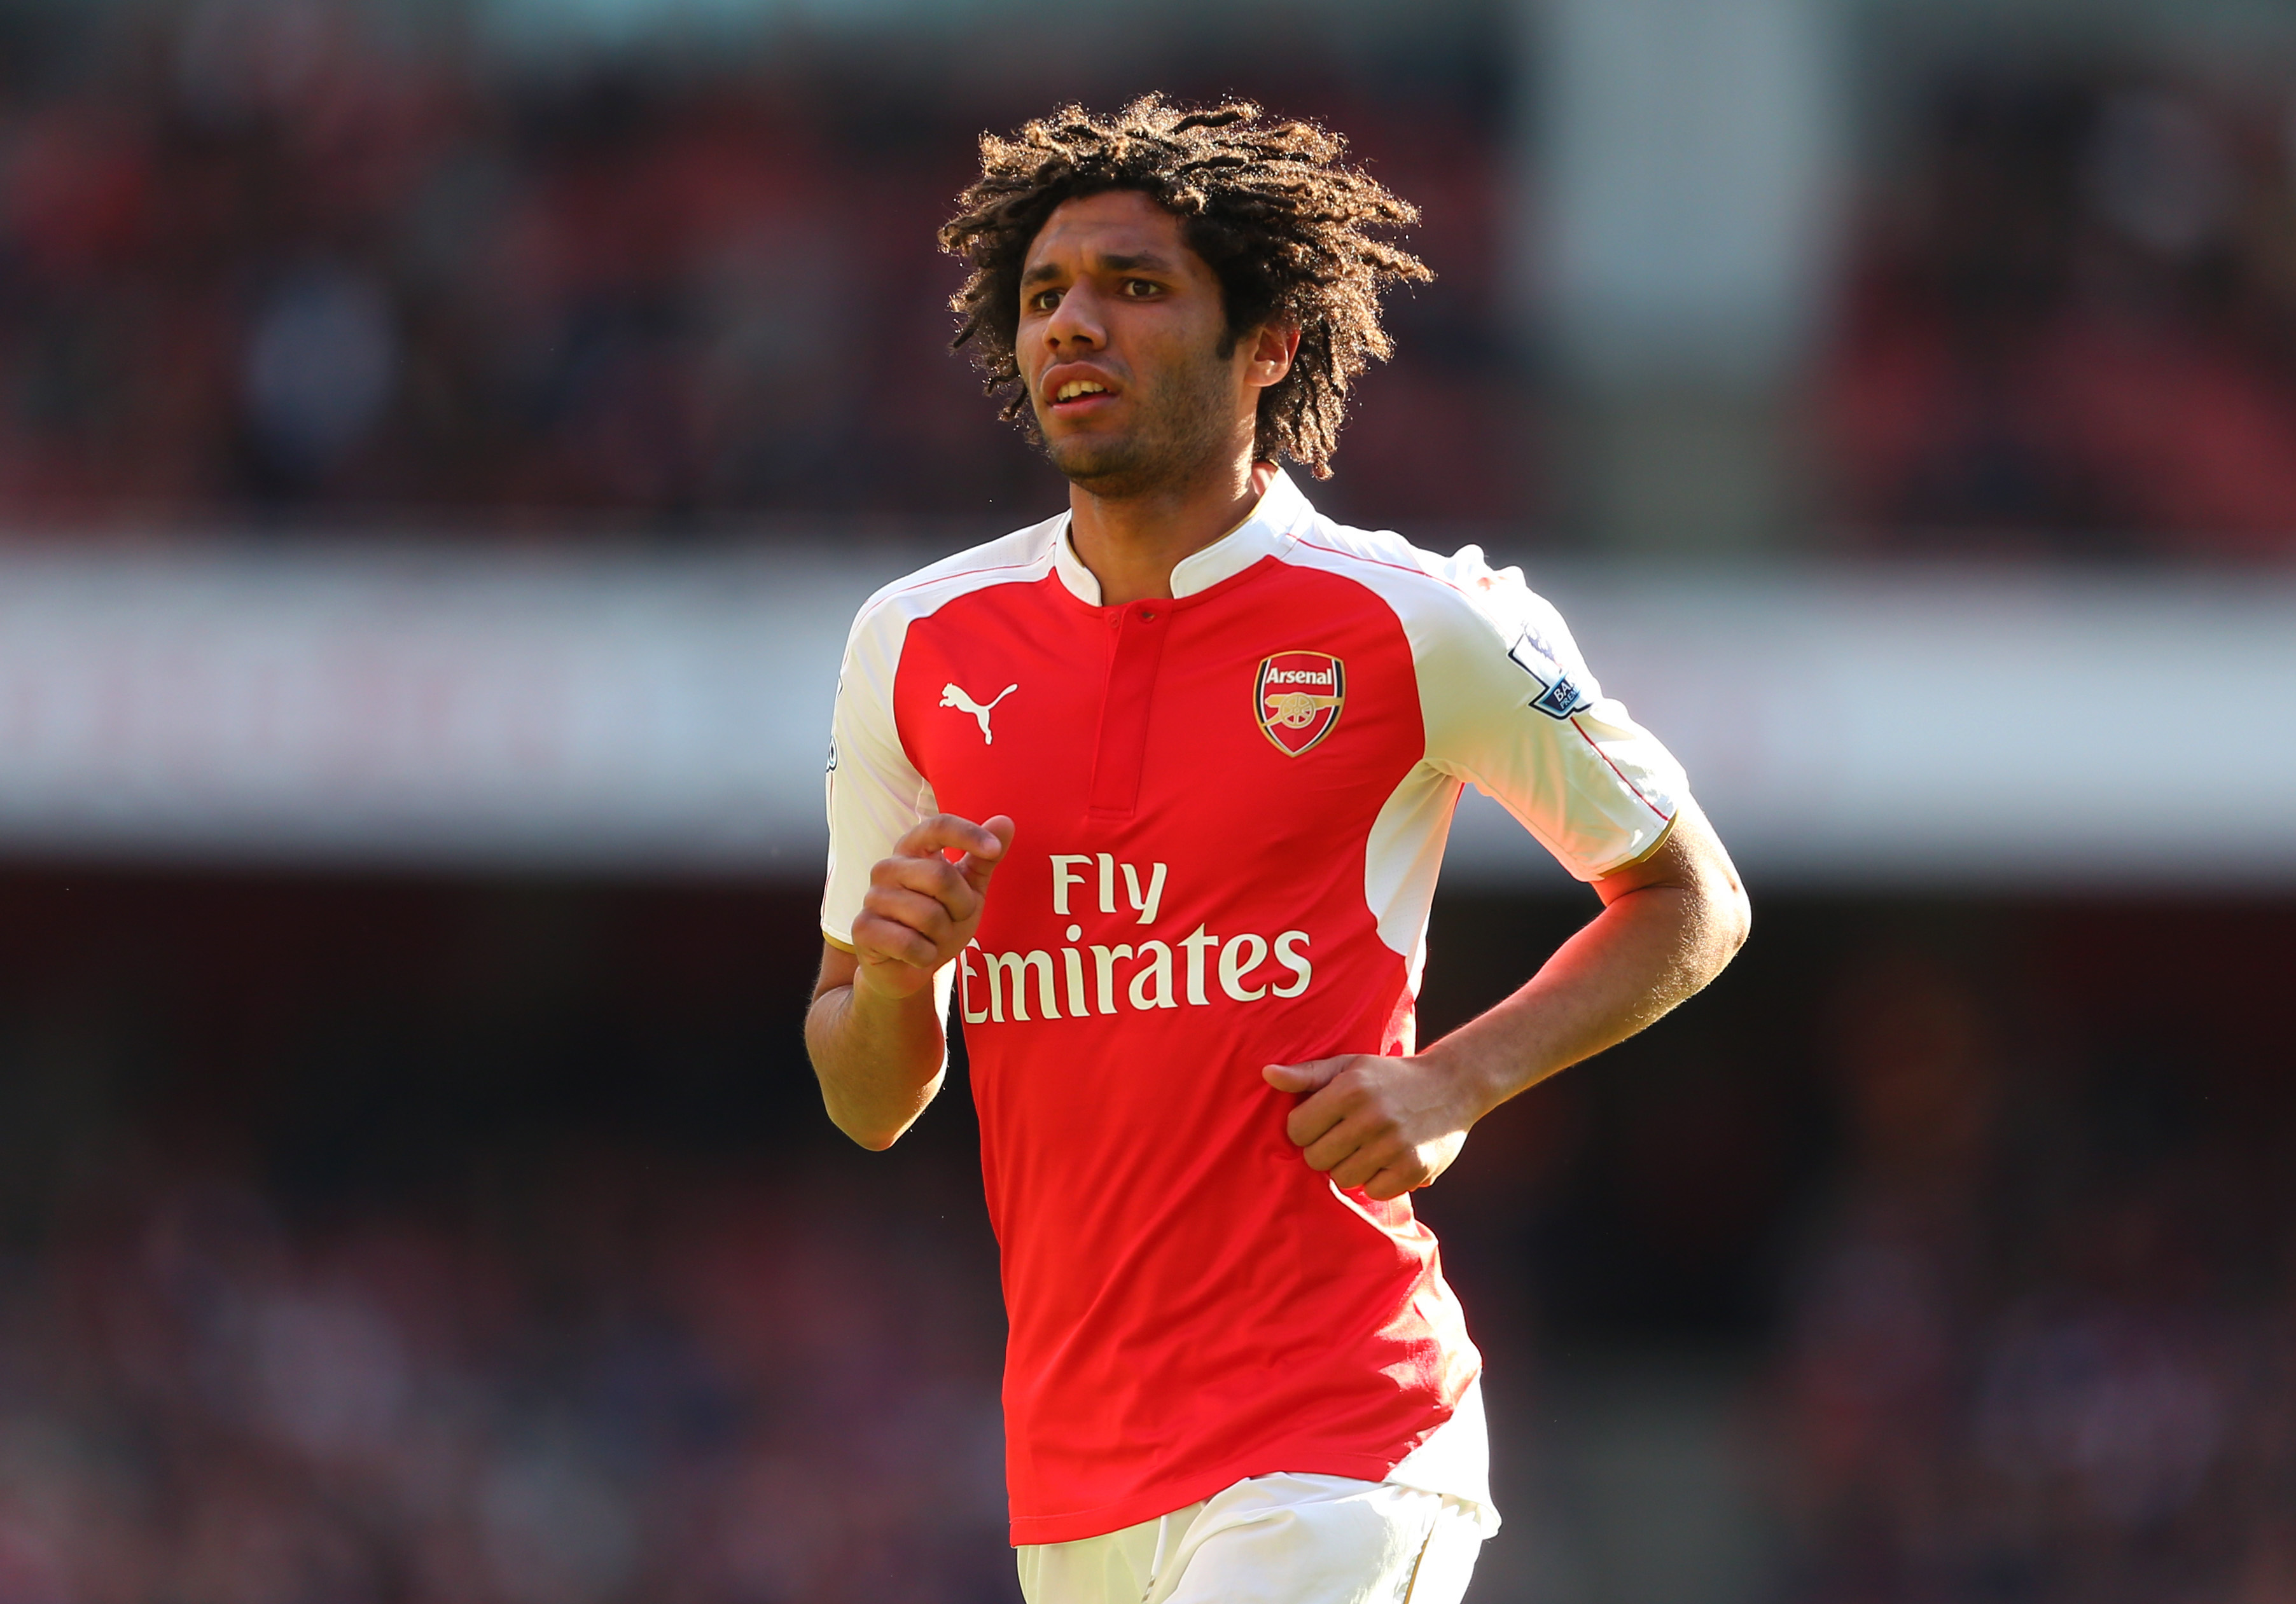 Arsenal: Mohamed Elneny's Absence No Cause For Concern